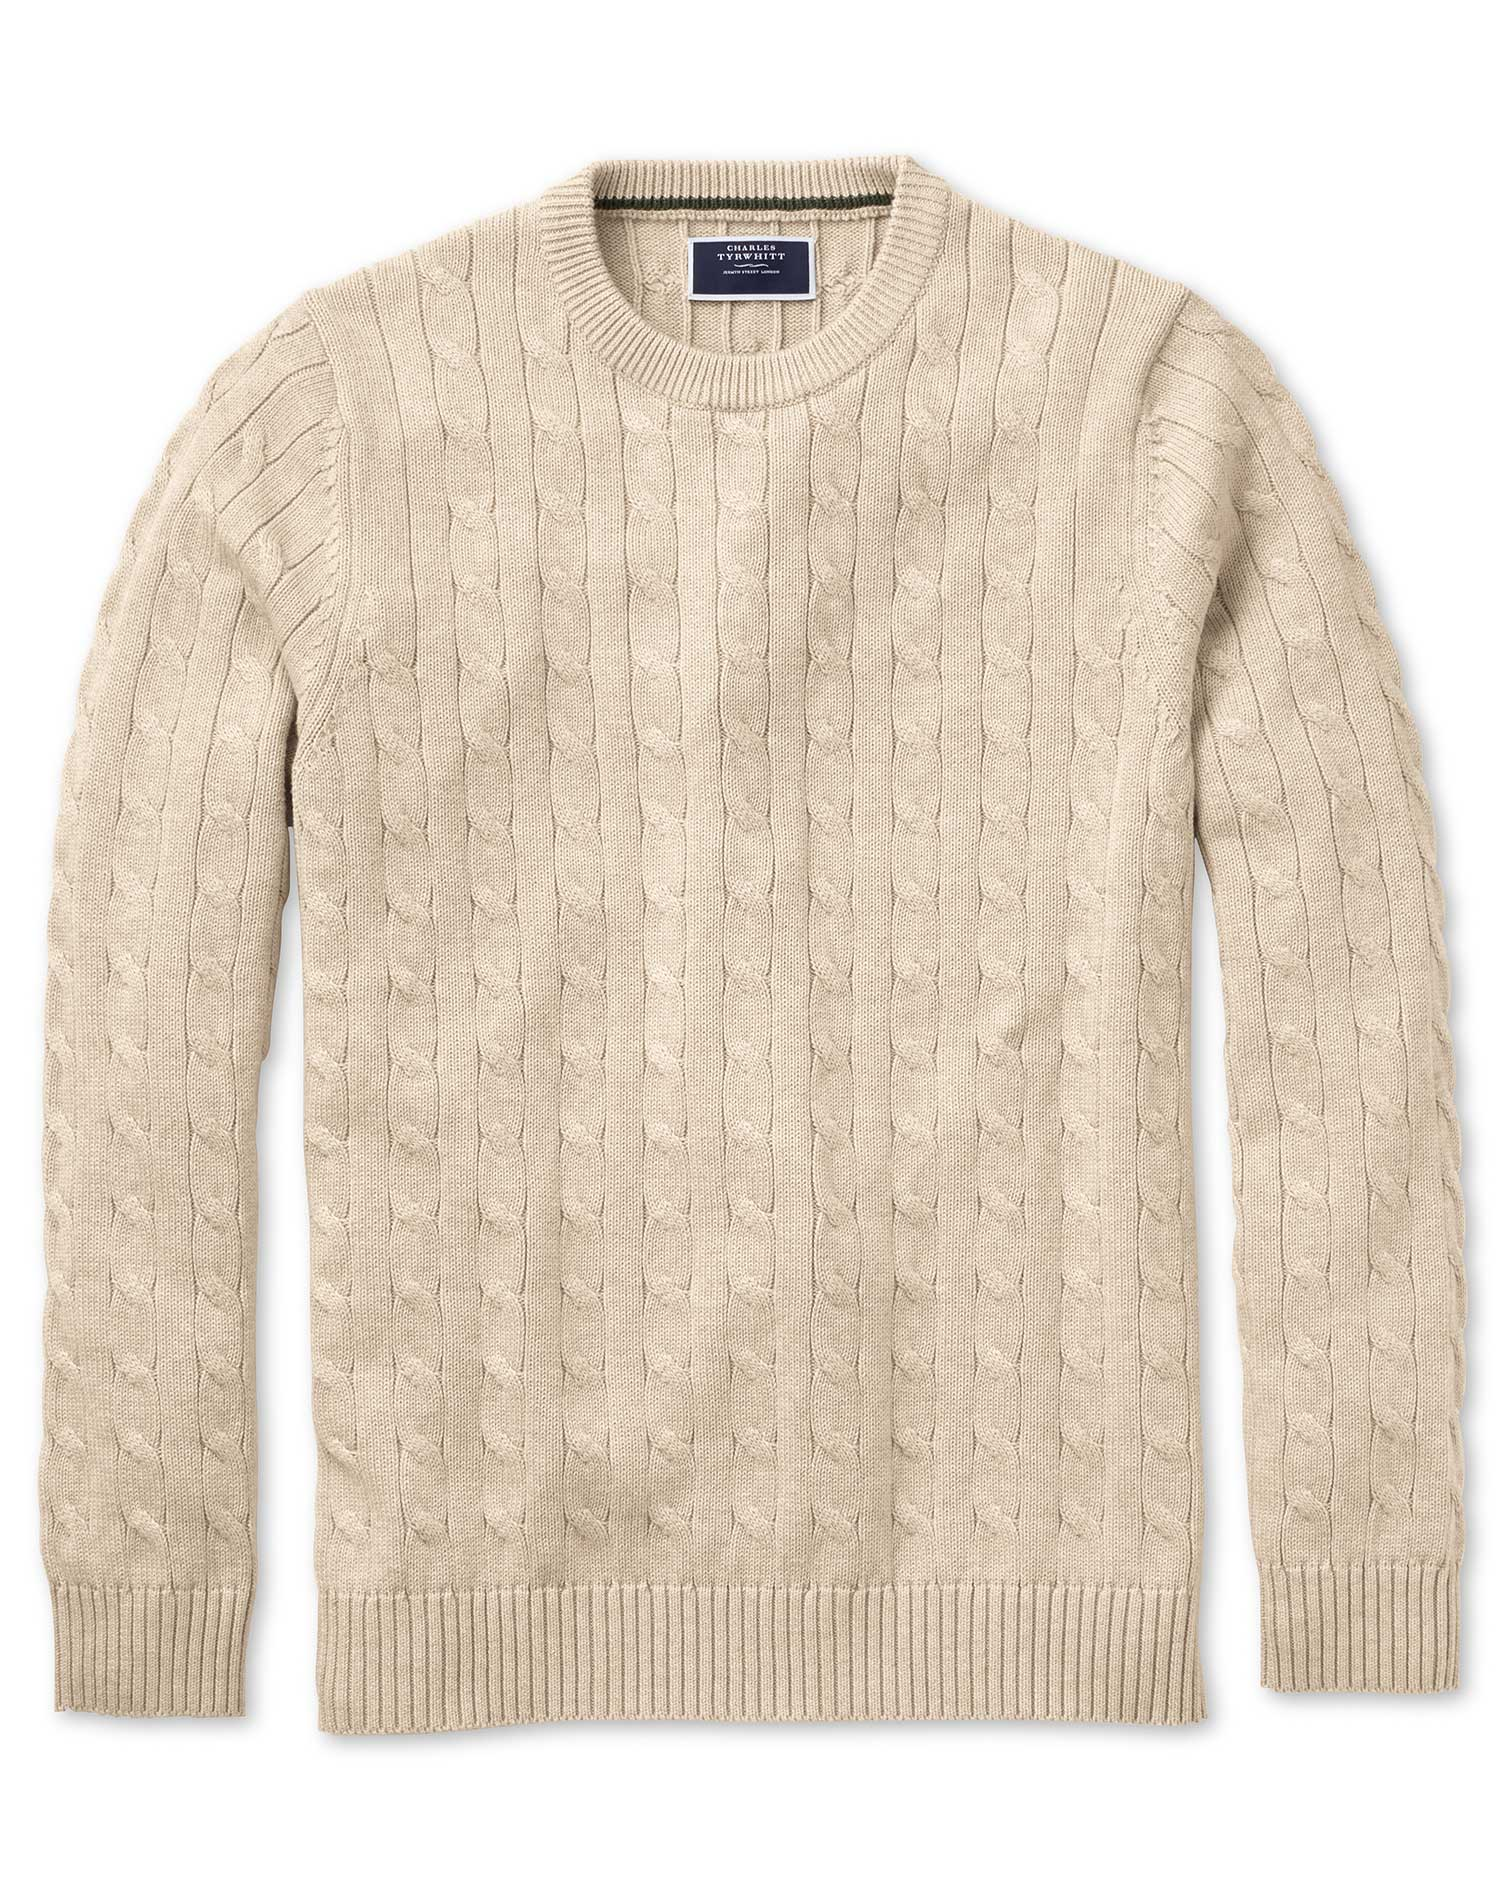 Stone Pima Cotton Cable Crew Neck Jumper Size XS by Charles Tyrwhitt